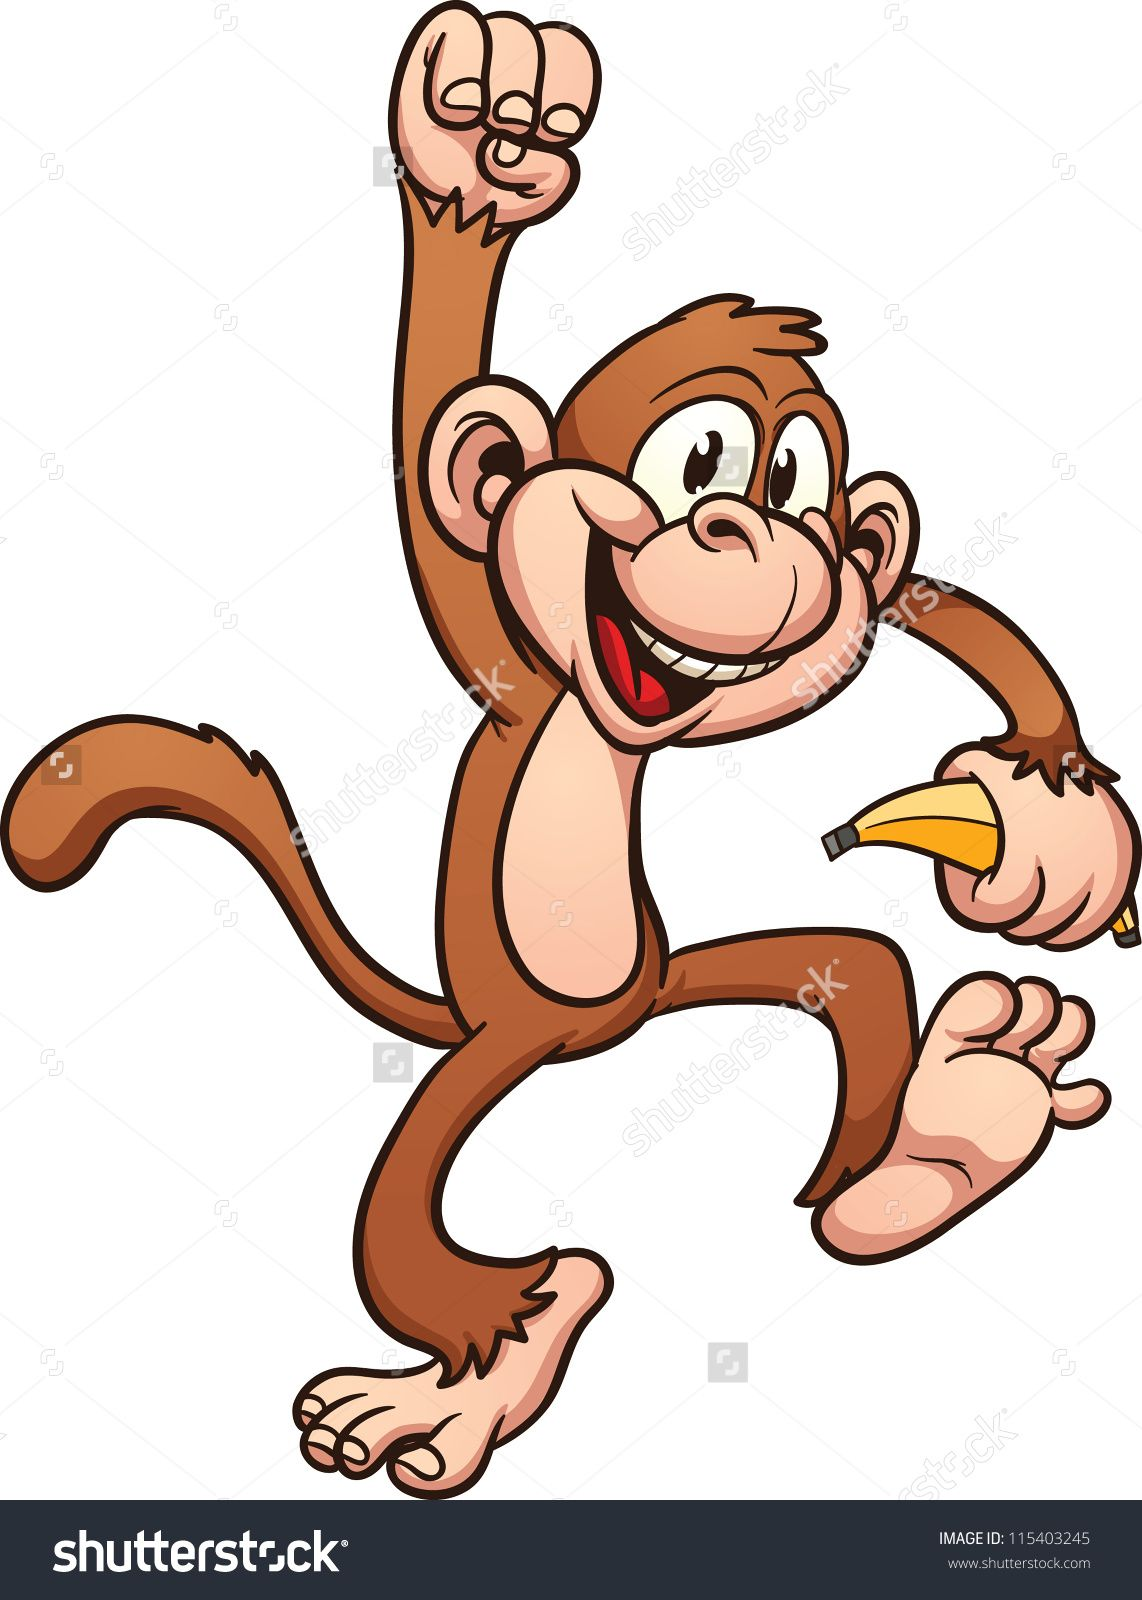 Image result for monkey clip art | aNiMaL cLiP-ArT | Pinterest